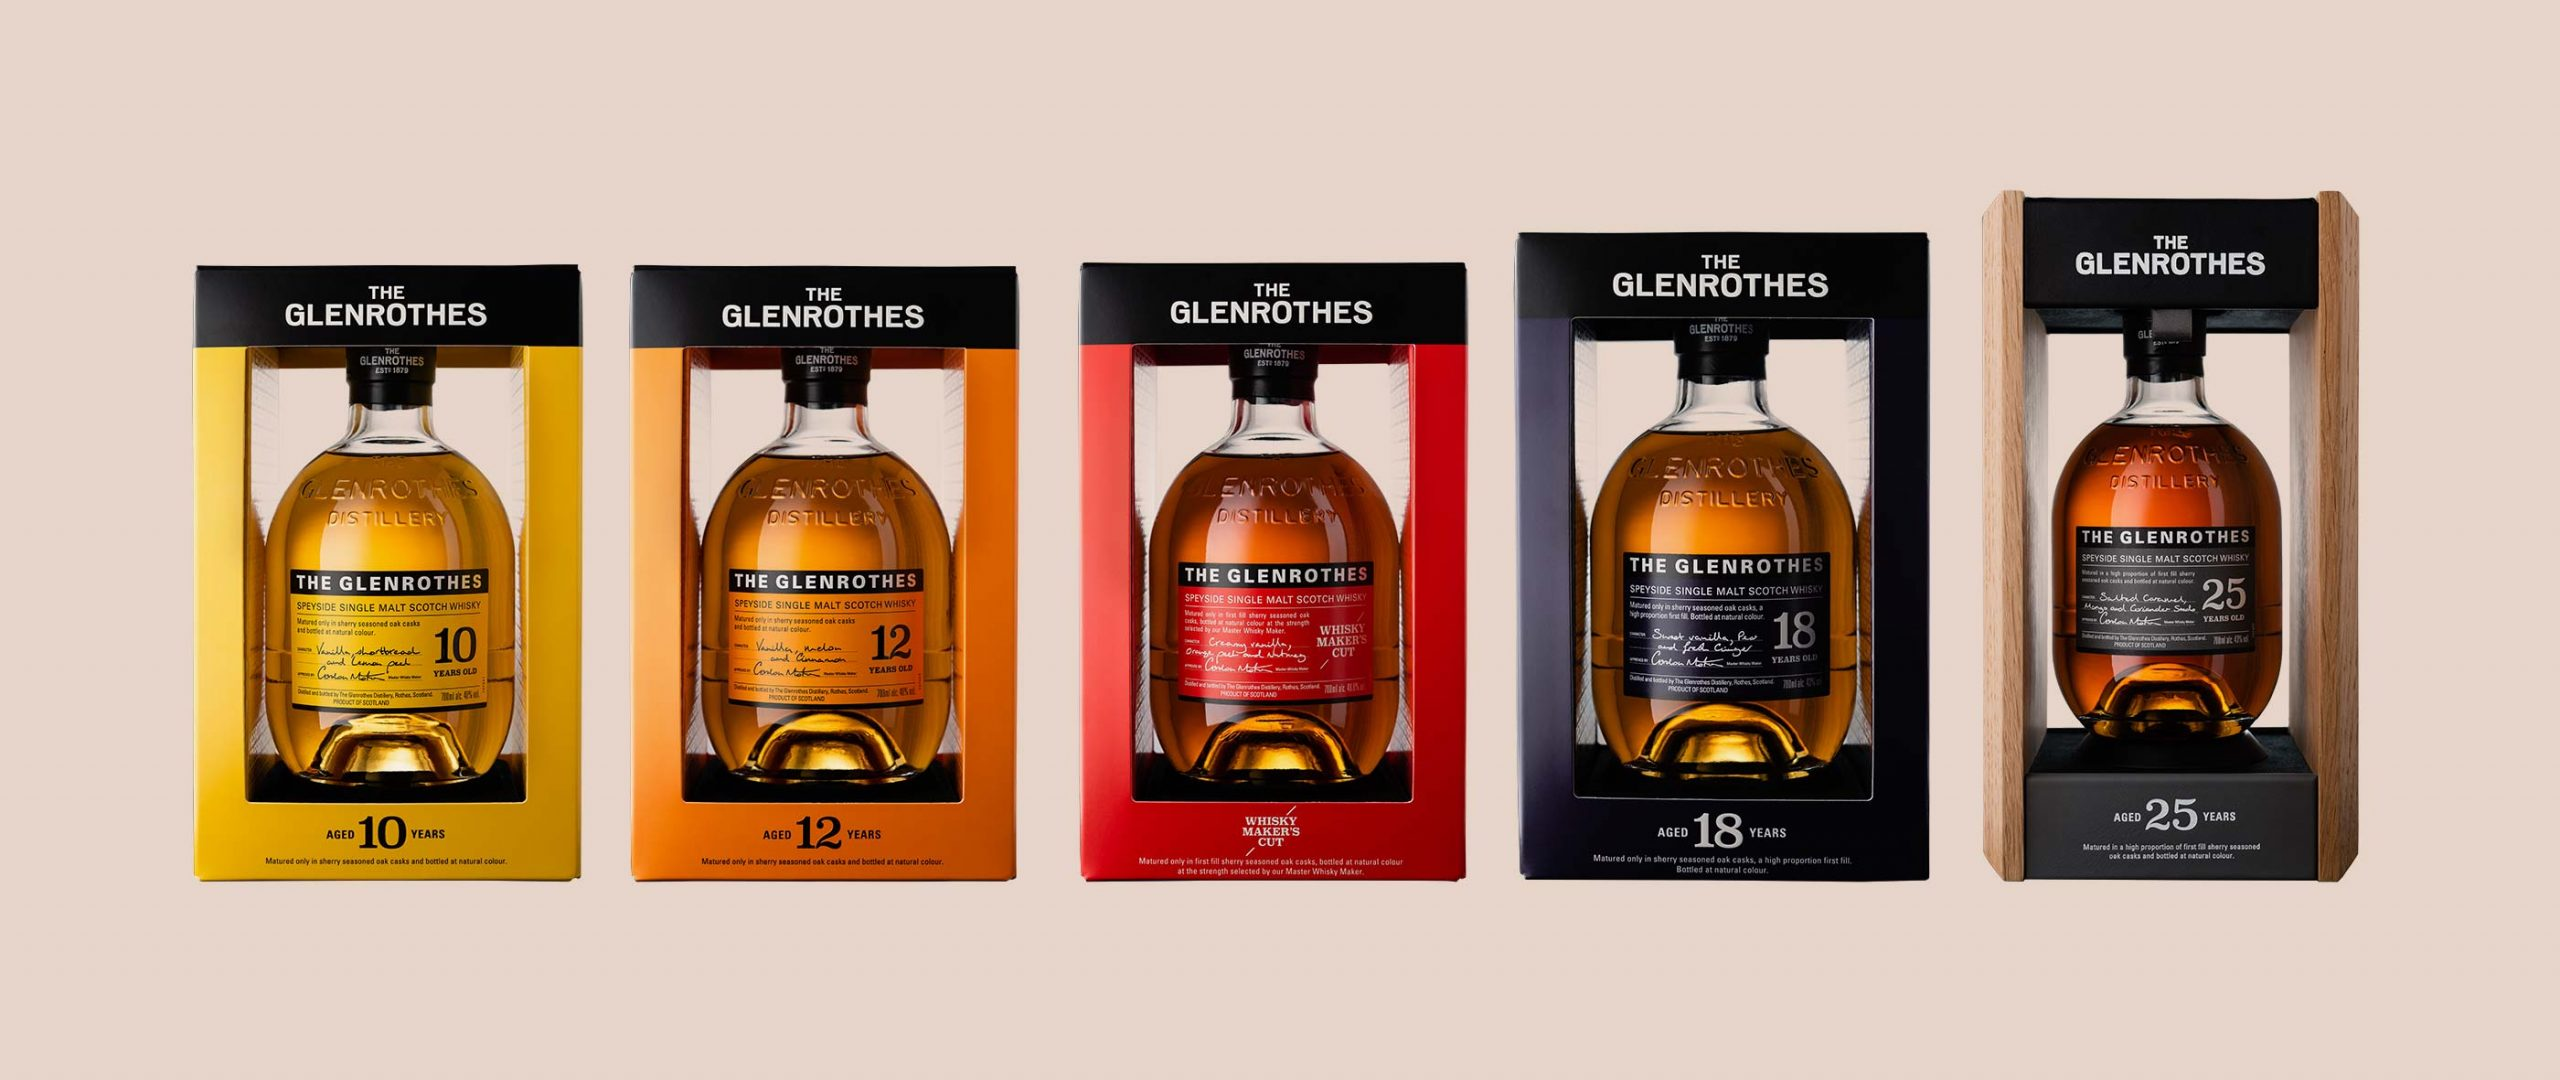 Glenrothes_Packaging